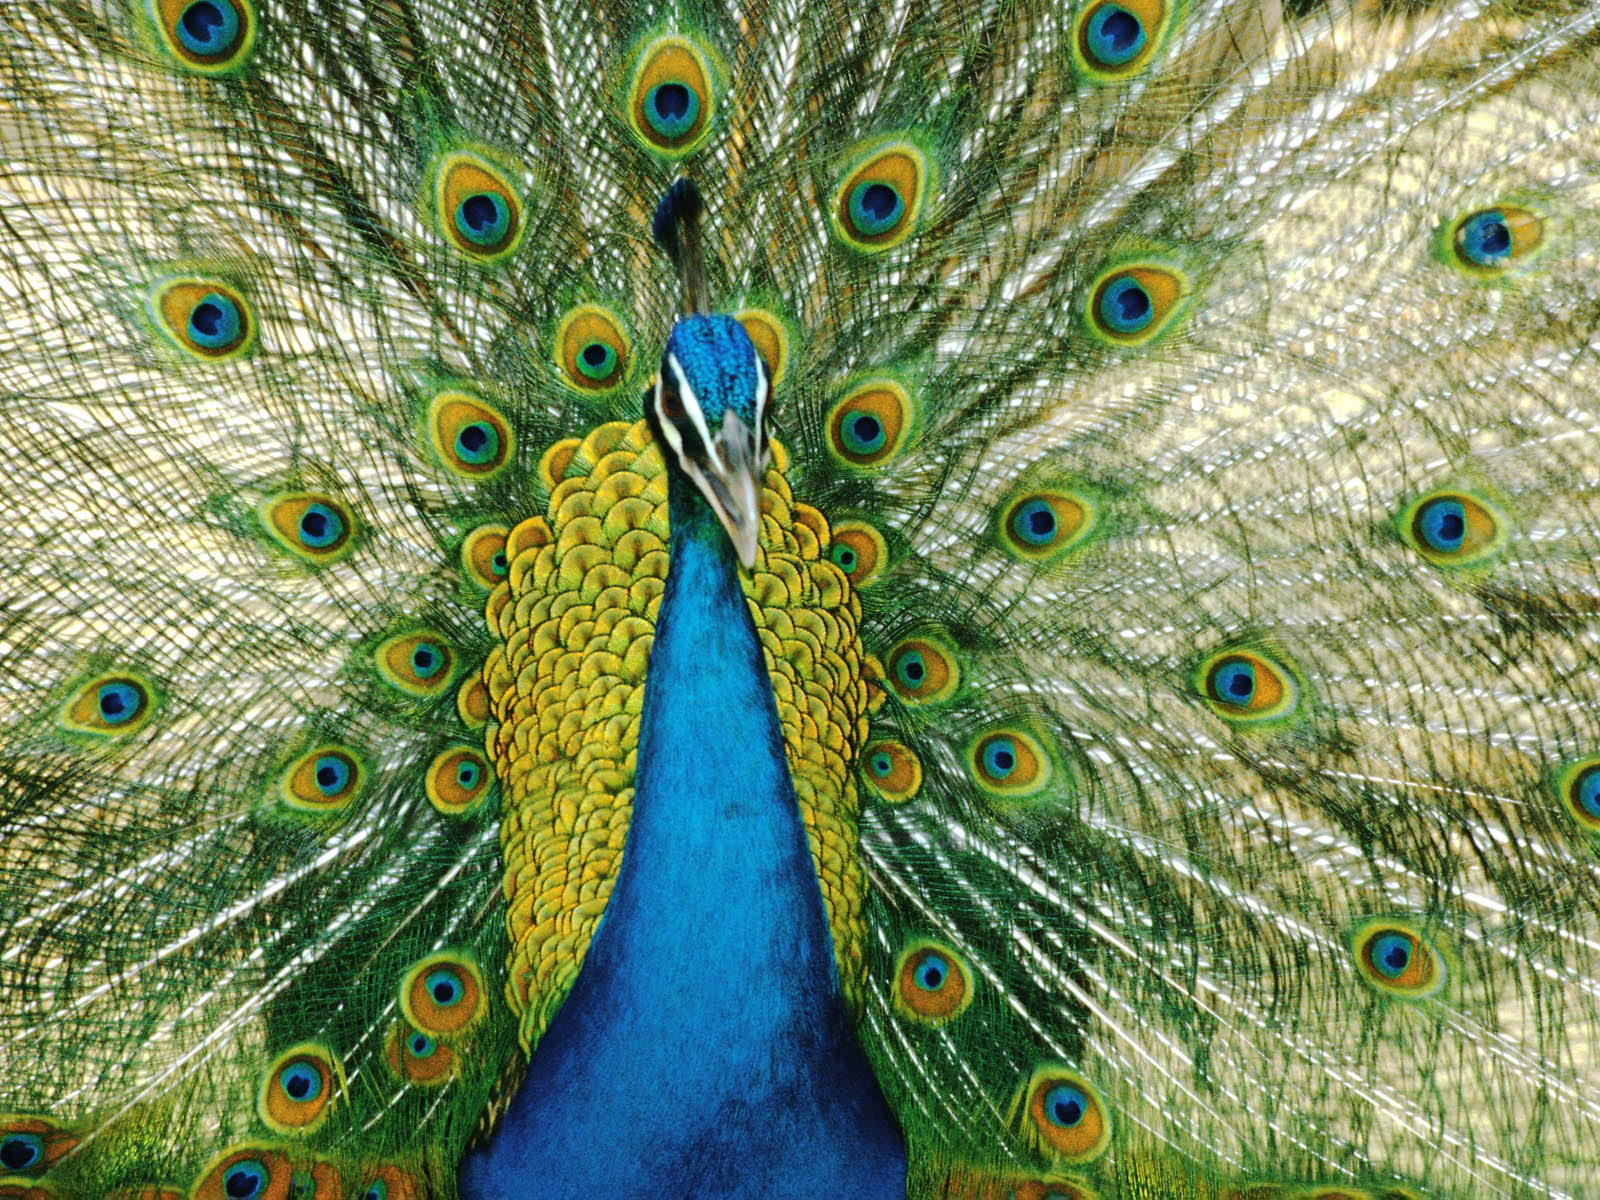 Peacock wallpapers - photo#13